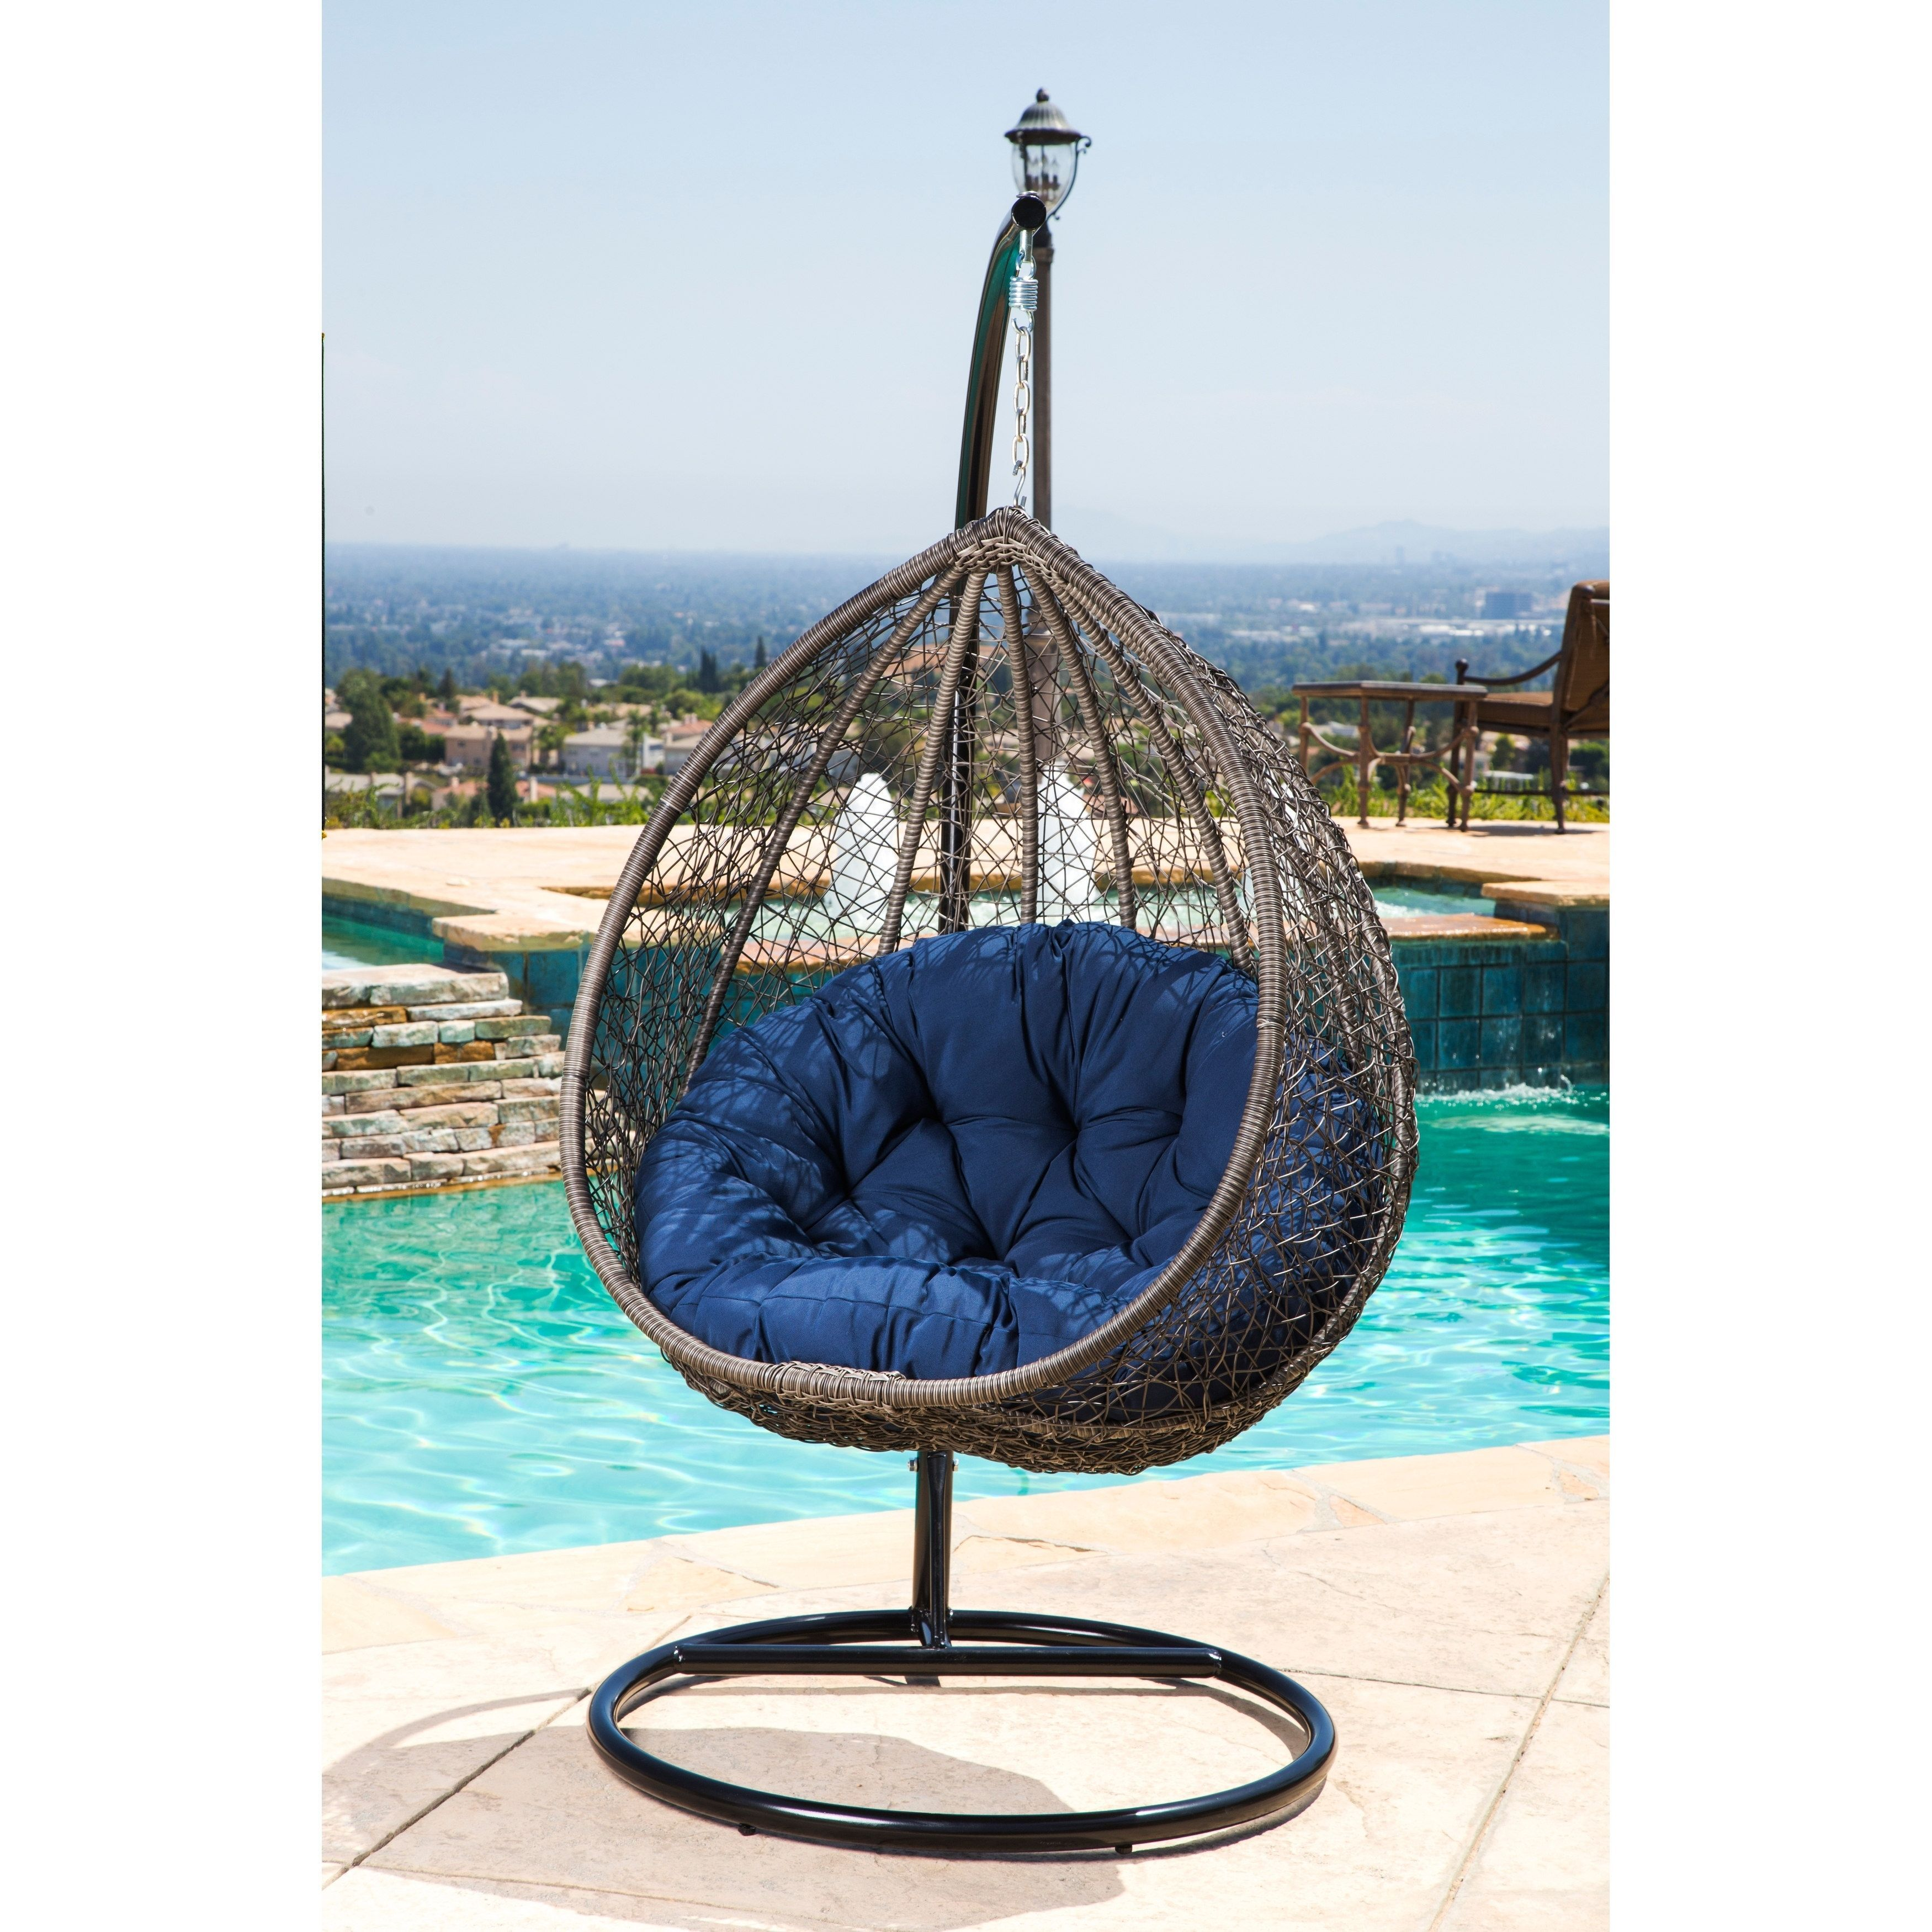 Abbyson Newport Outdoor Wicker Patio Swing Chair Brown Blue Polyester Iron Navy Furniture